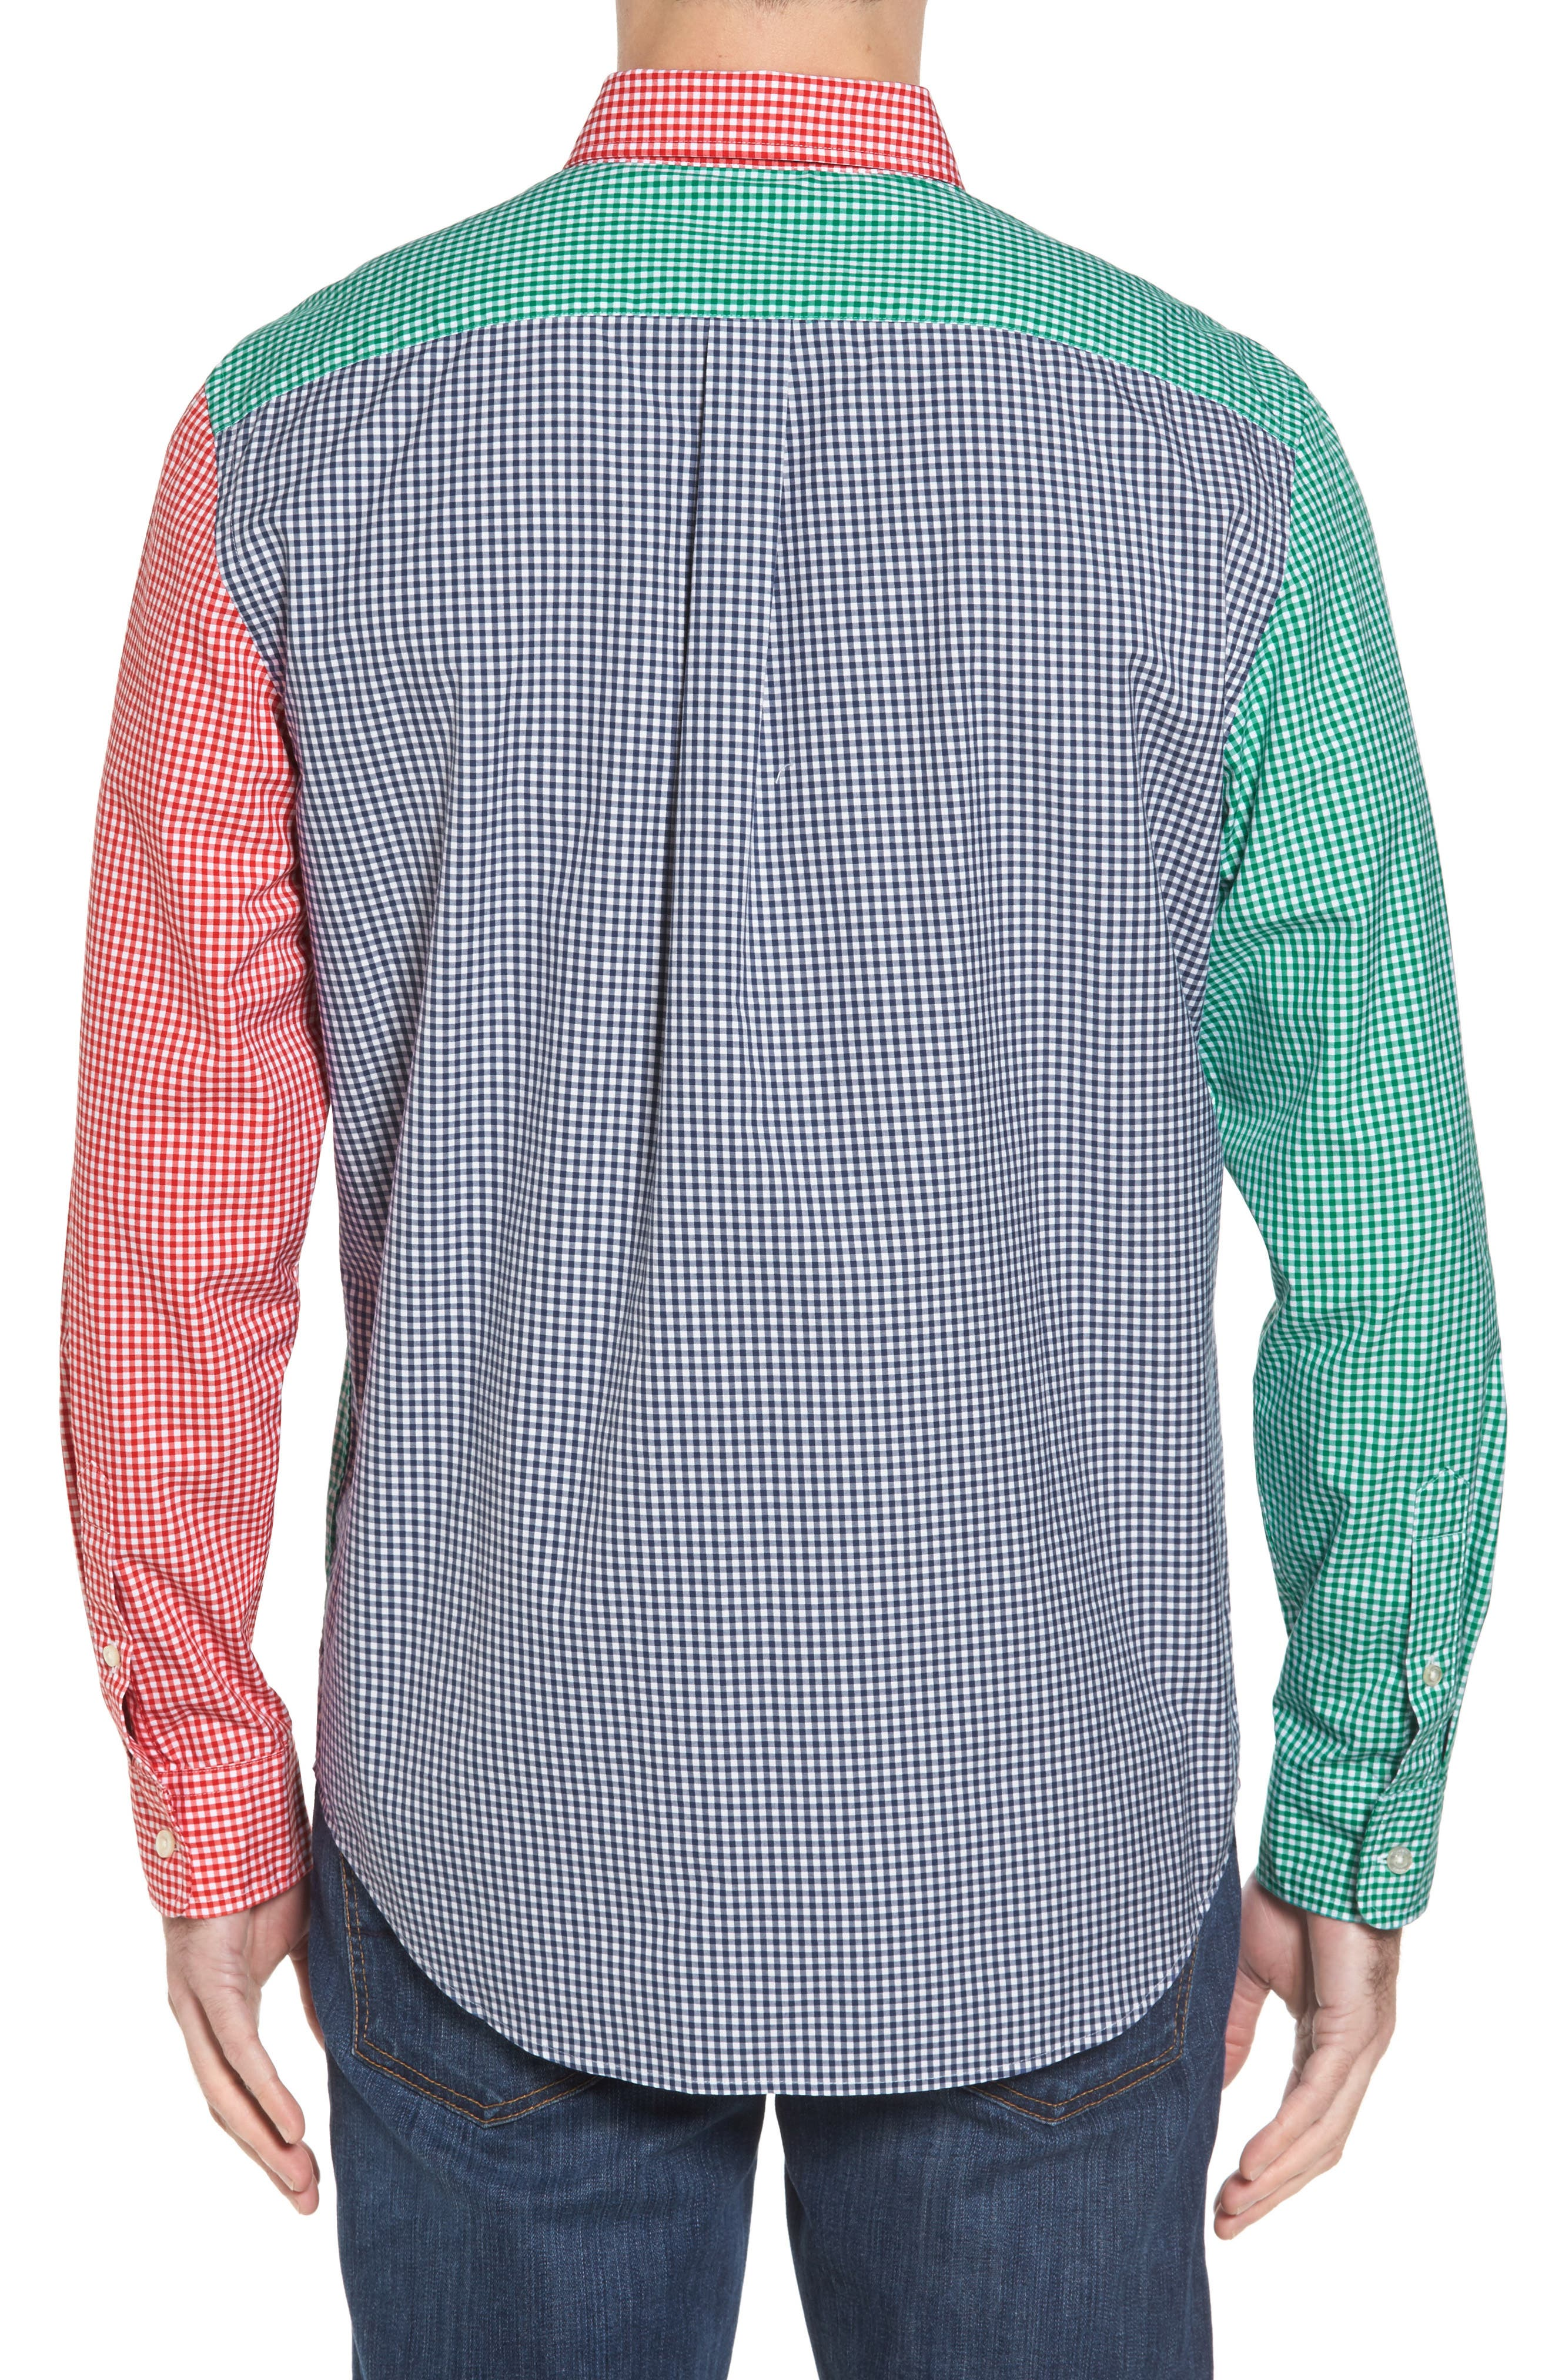 Alternate Image 2  - vineyard vines Holiday Party Classic Fit Colorblock Sport Shirt